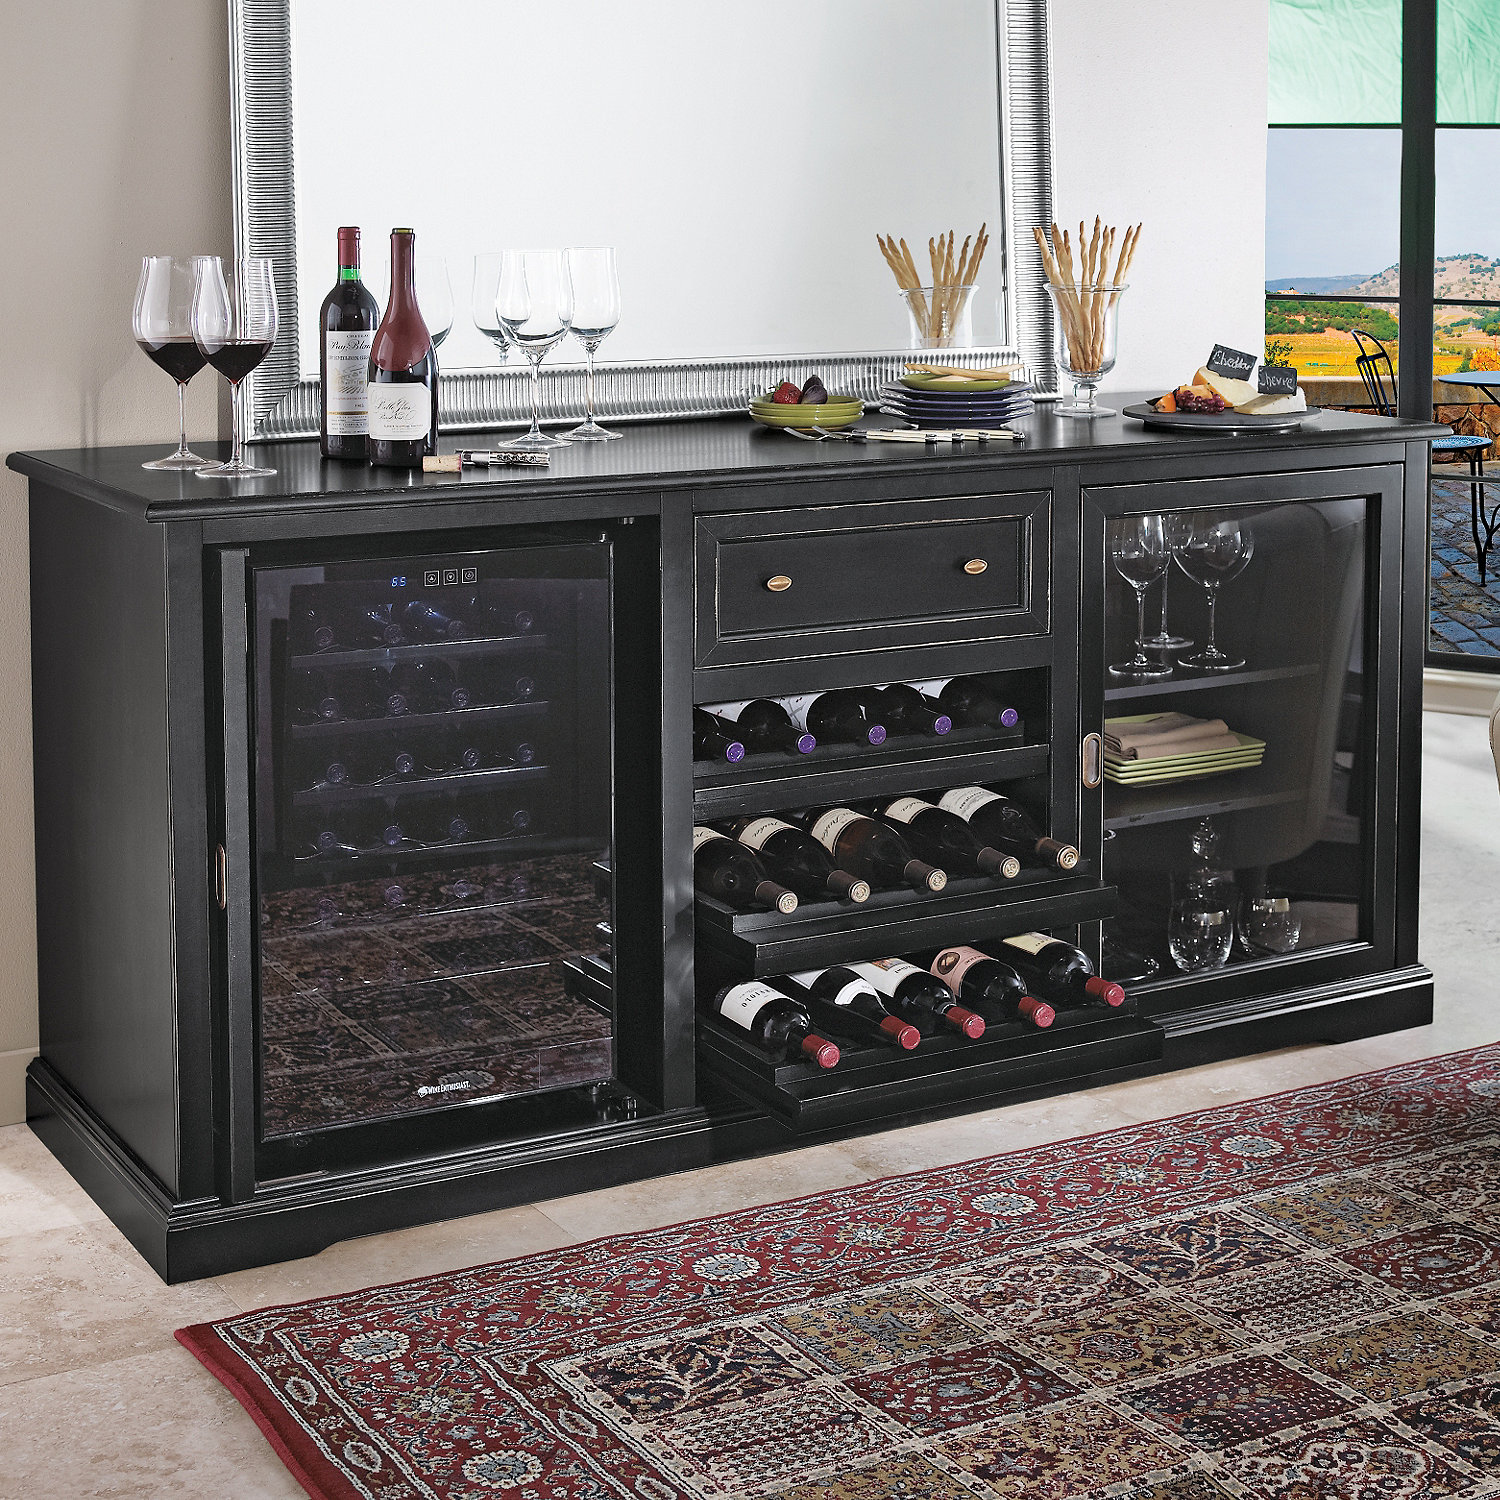 Know about Wine refrigerators